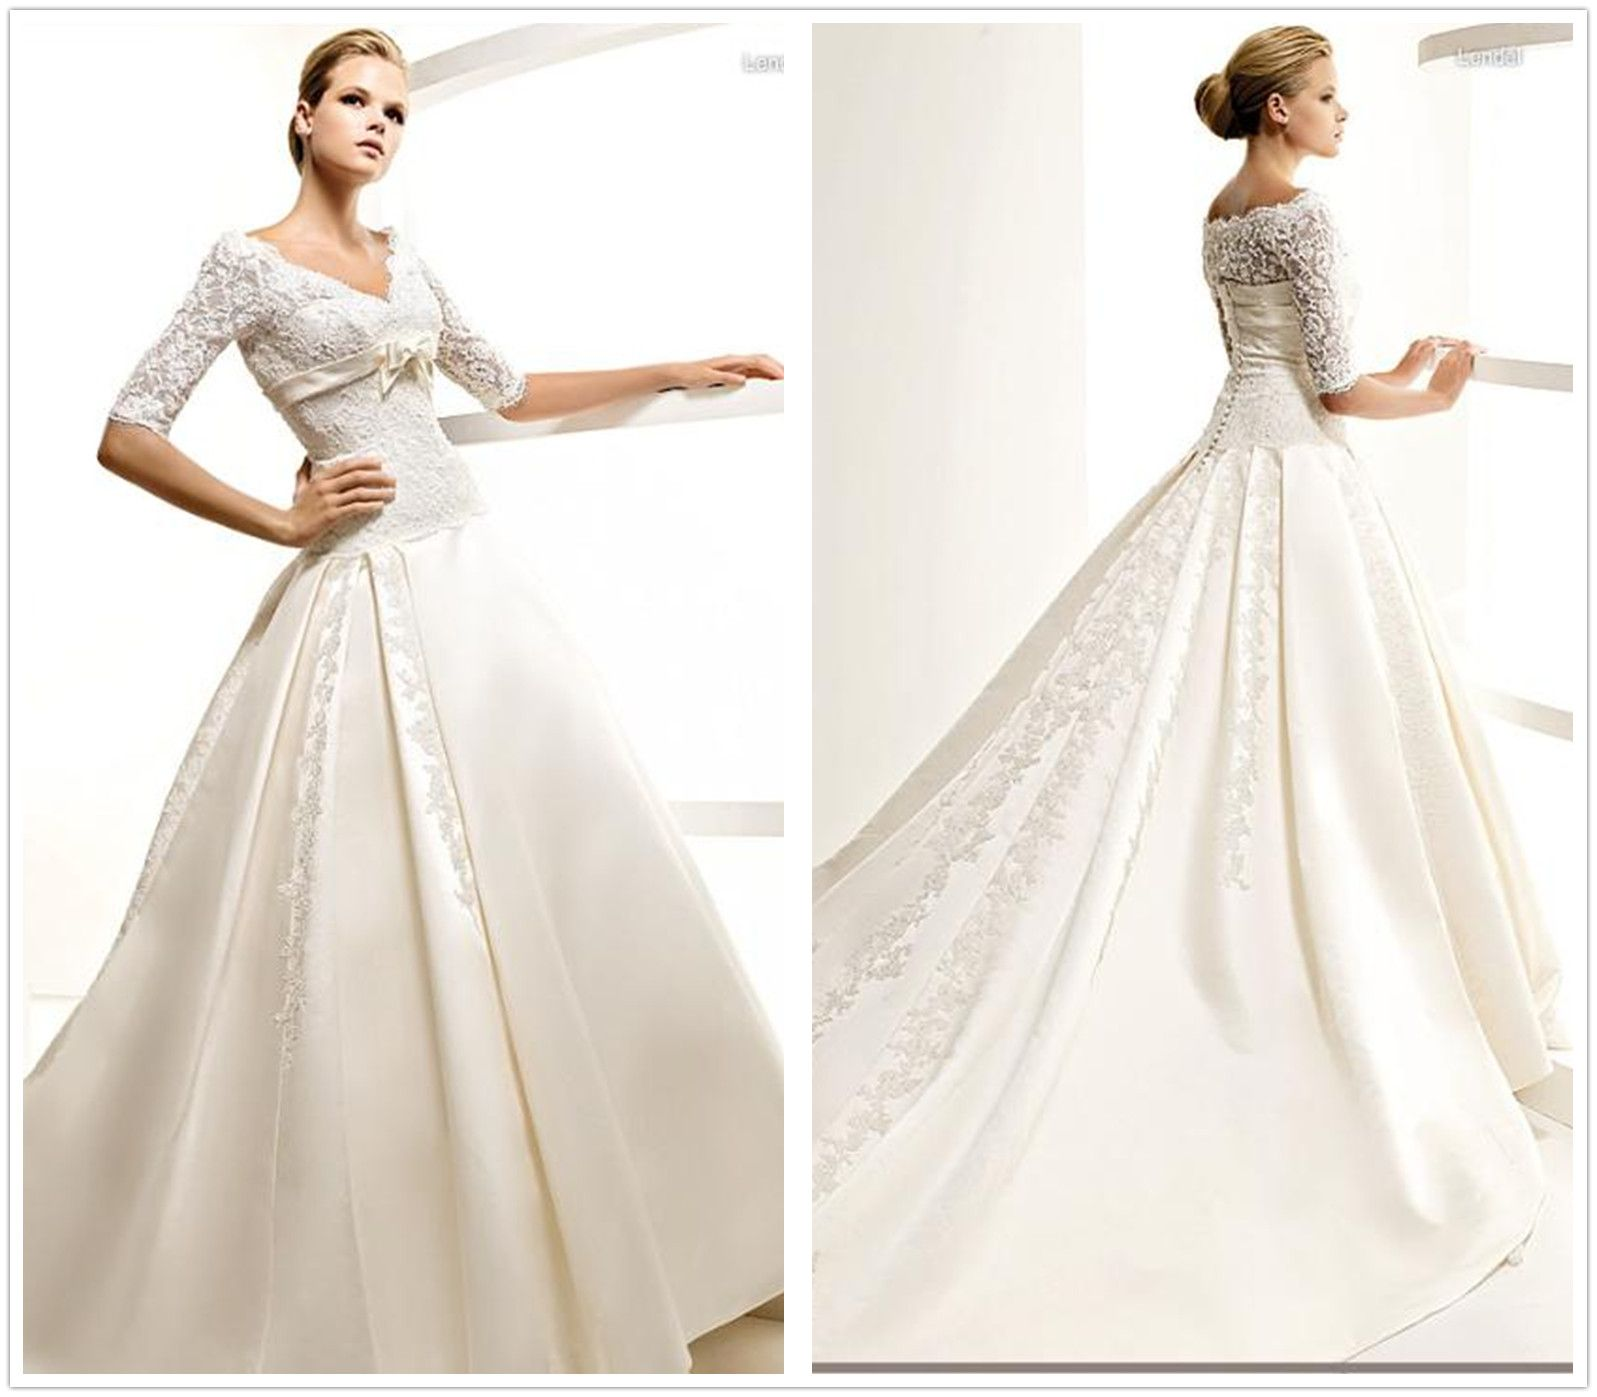 Satin And Lace Wedding Gowns: 3/4 Sleeves Lace Satin Ivory Bridal Wedding Dress A-Line